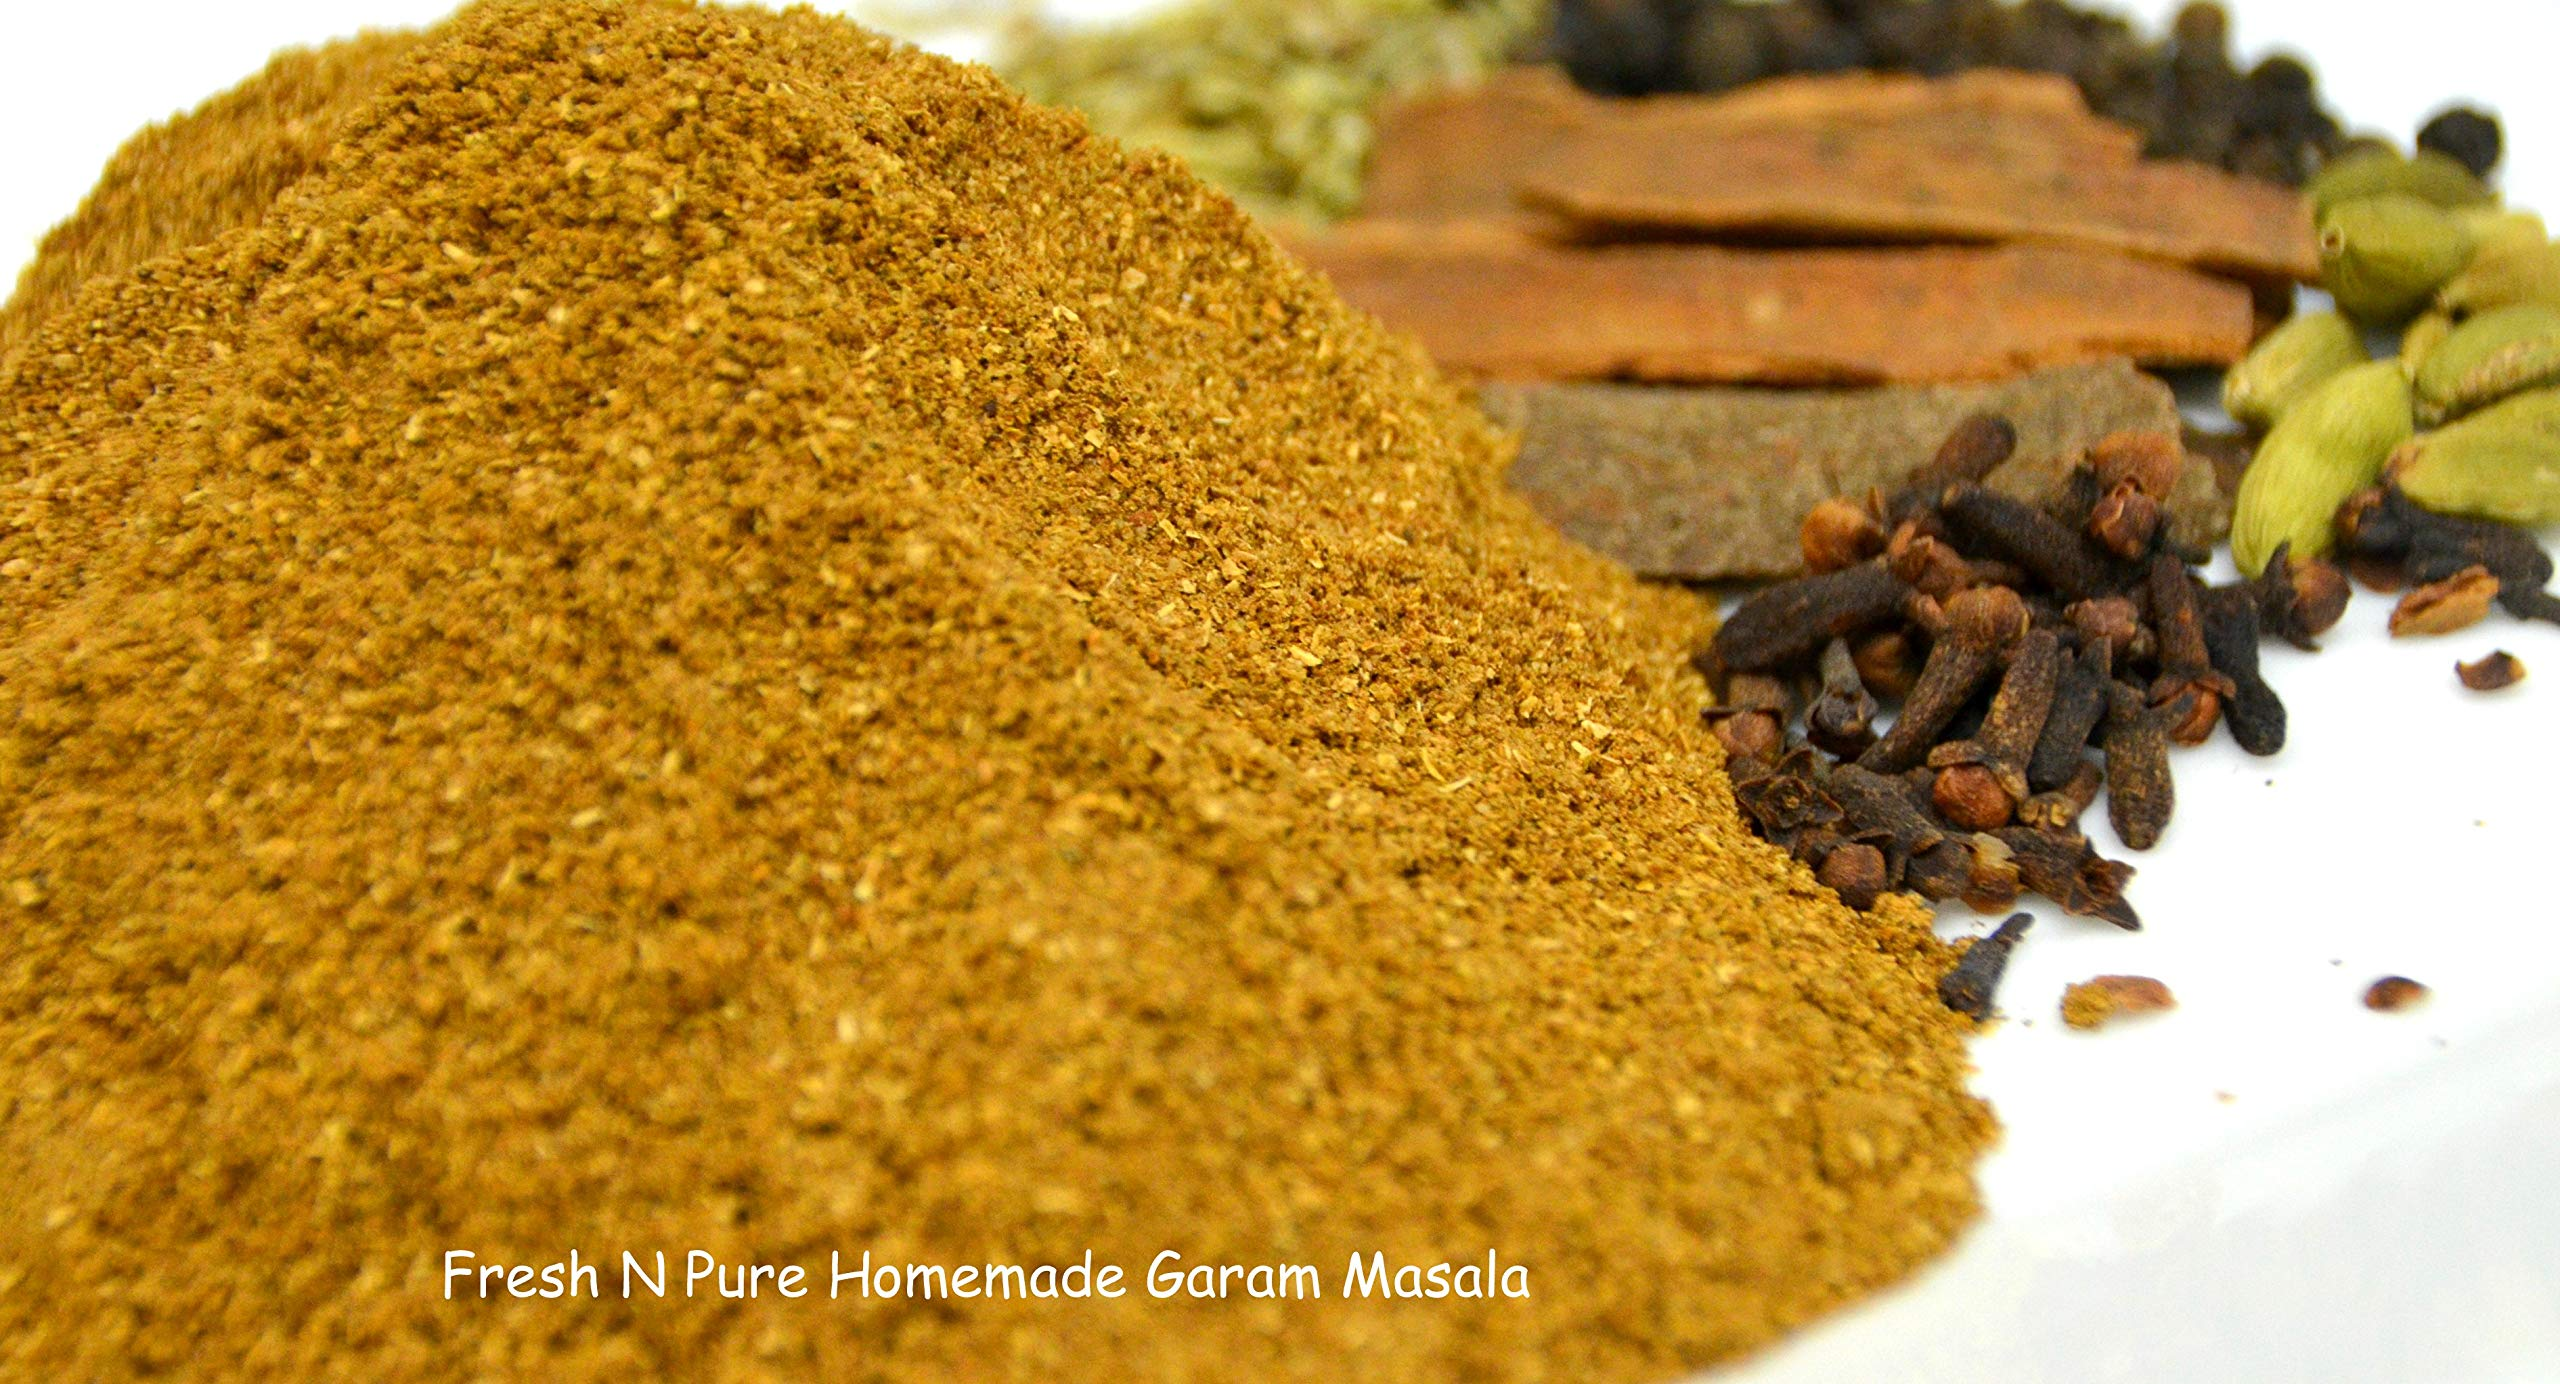 HOMEMADE GARAM MASALA- A Blend of Indian Spices, Aromatic Grounded Spices,Pure N Fresh (16)